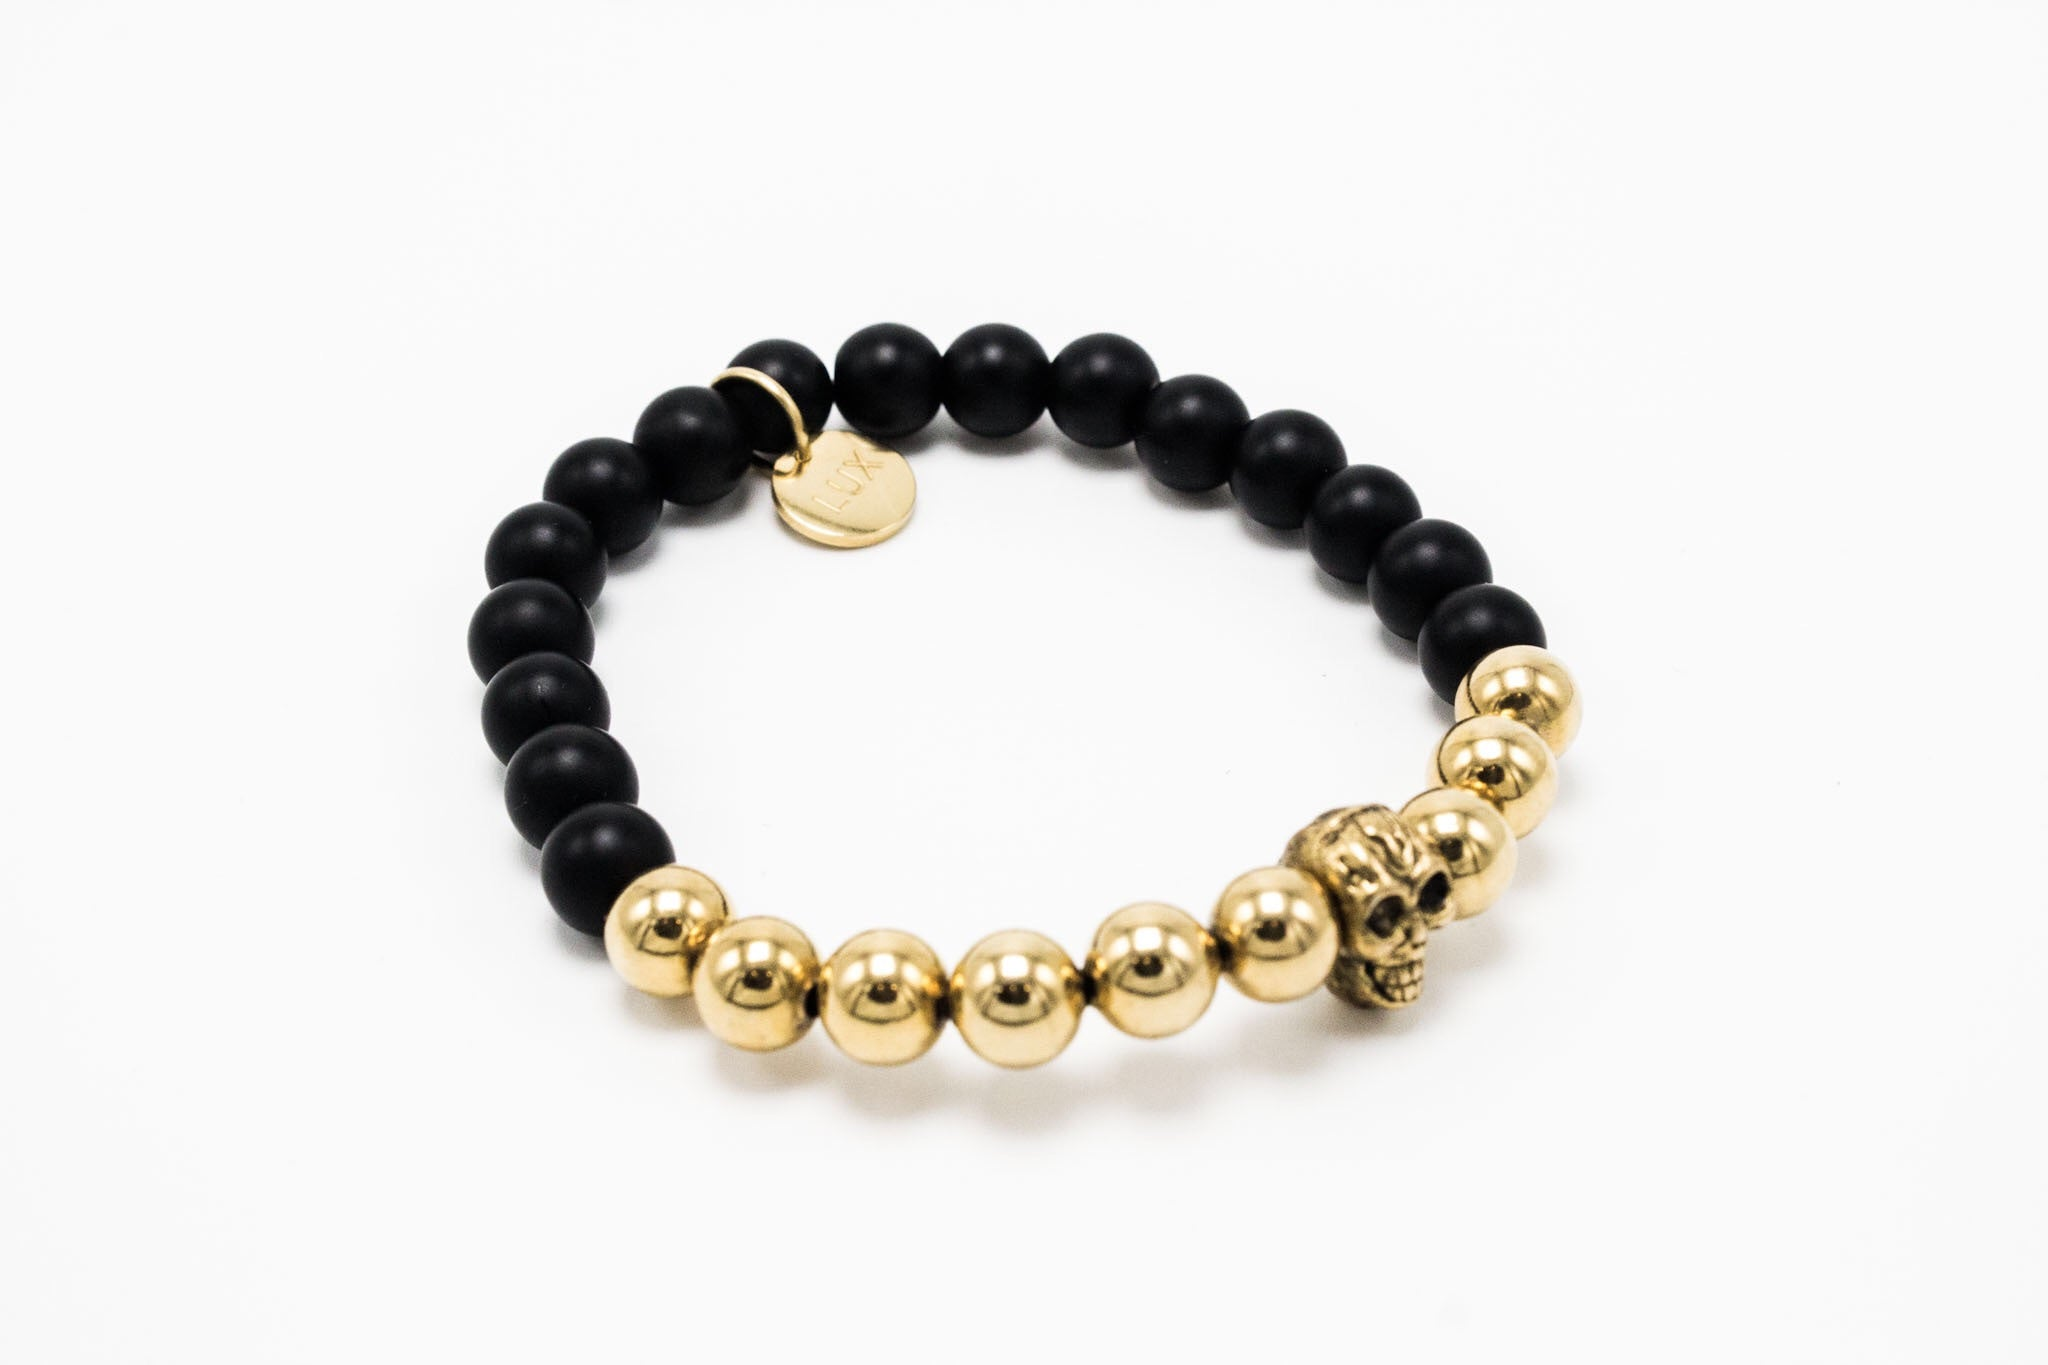 Matte Onyx Lux golden beads